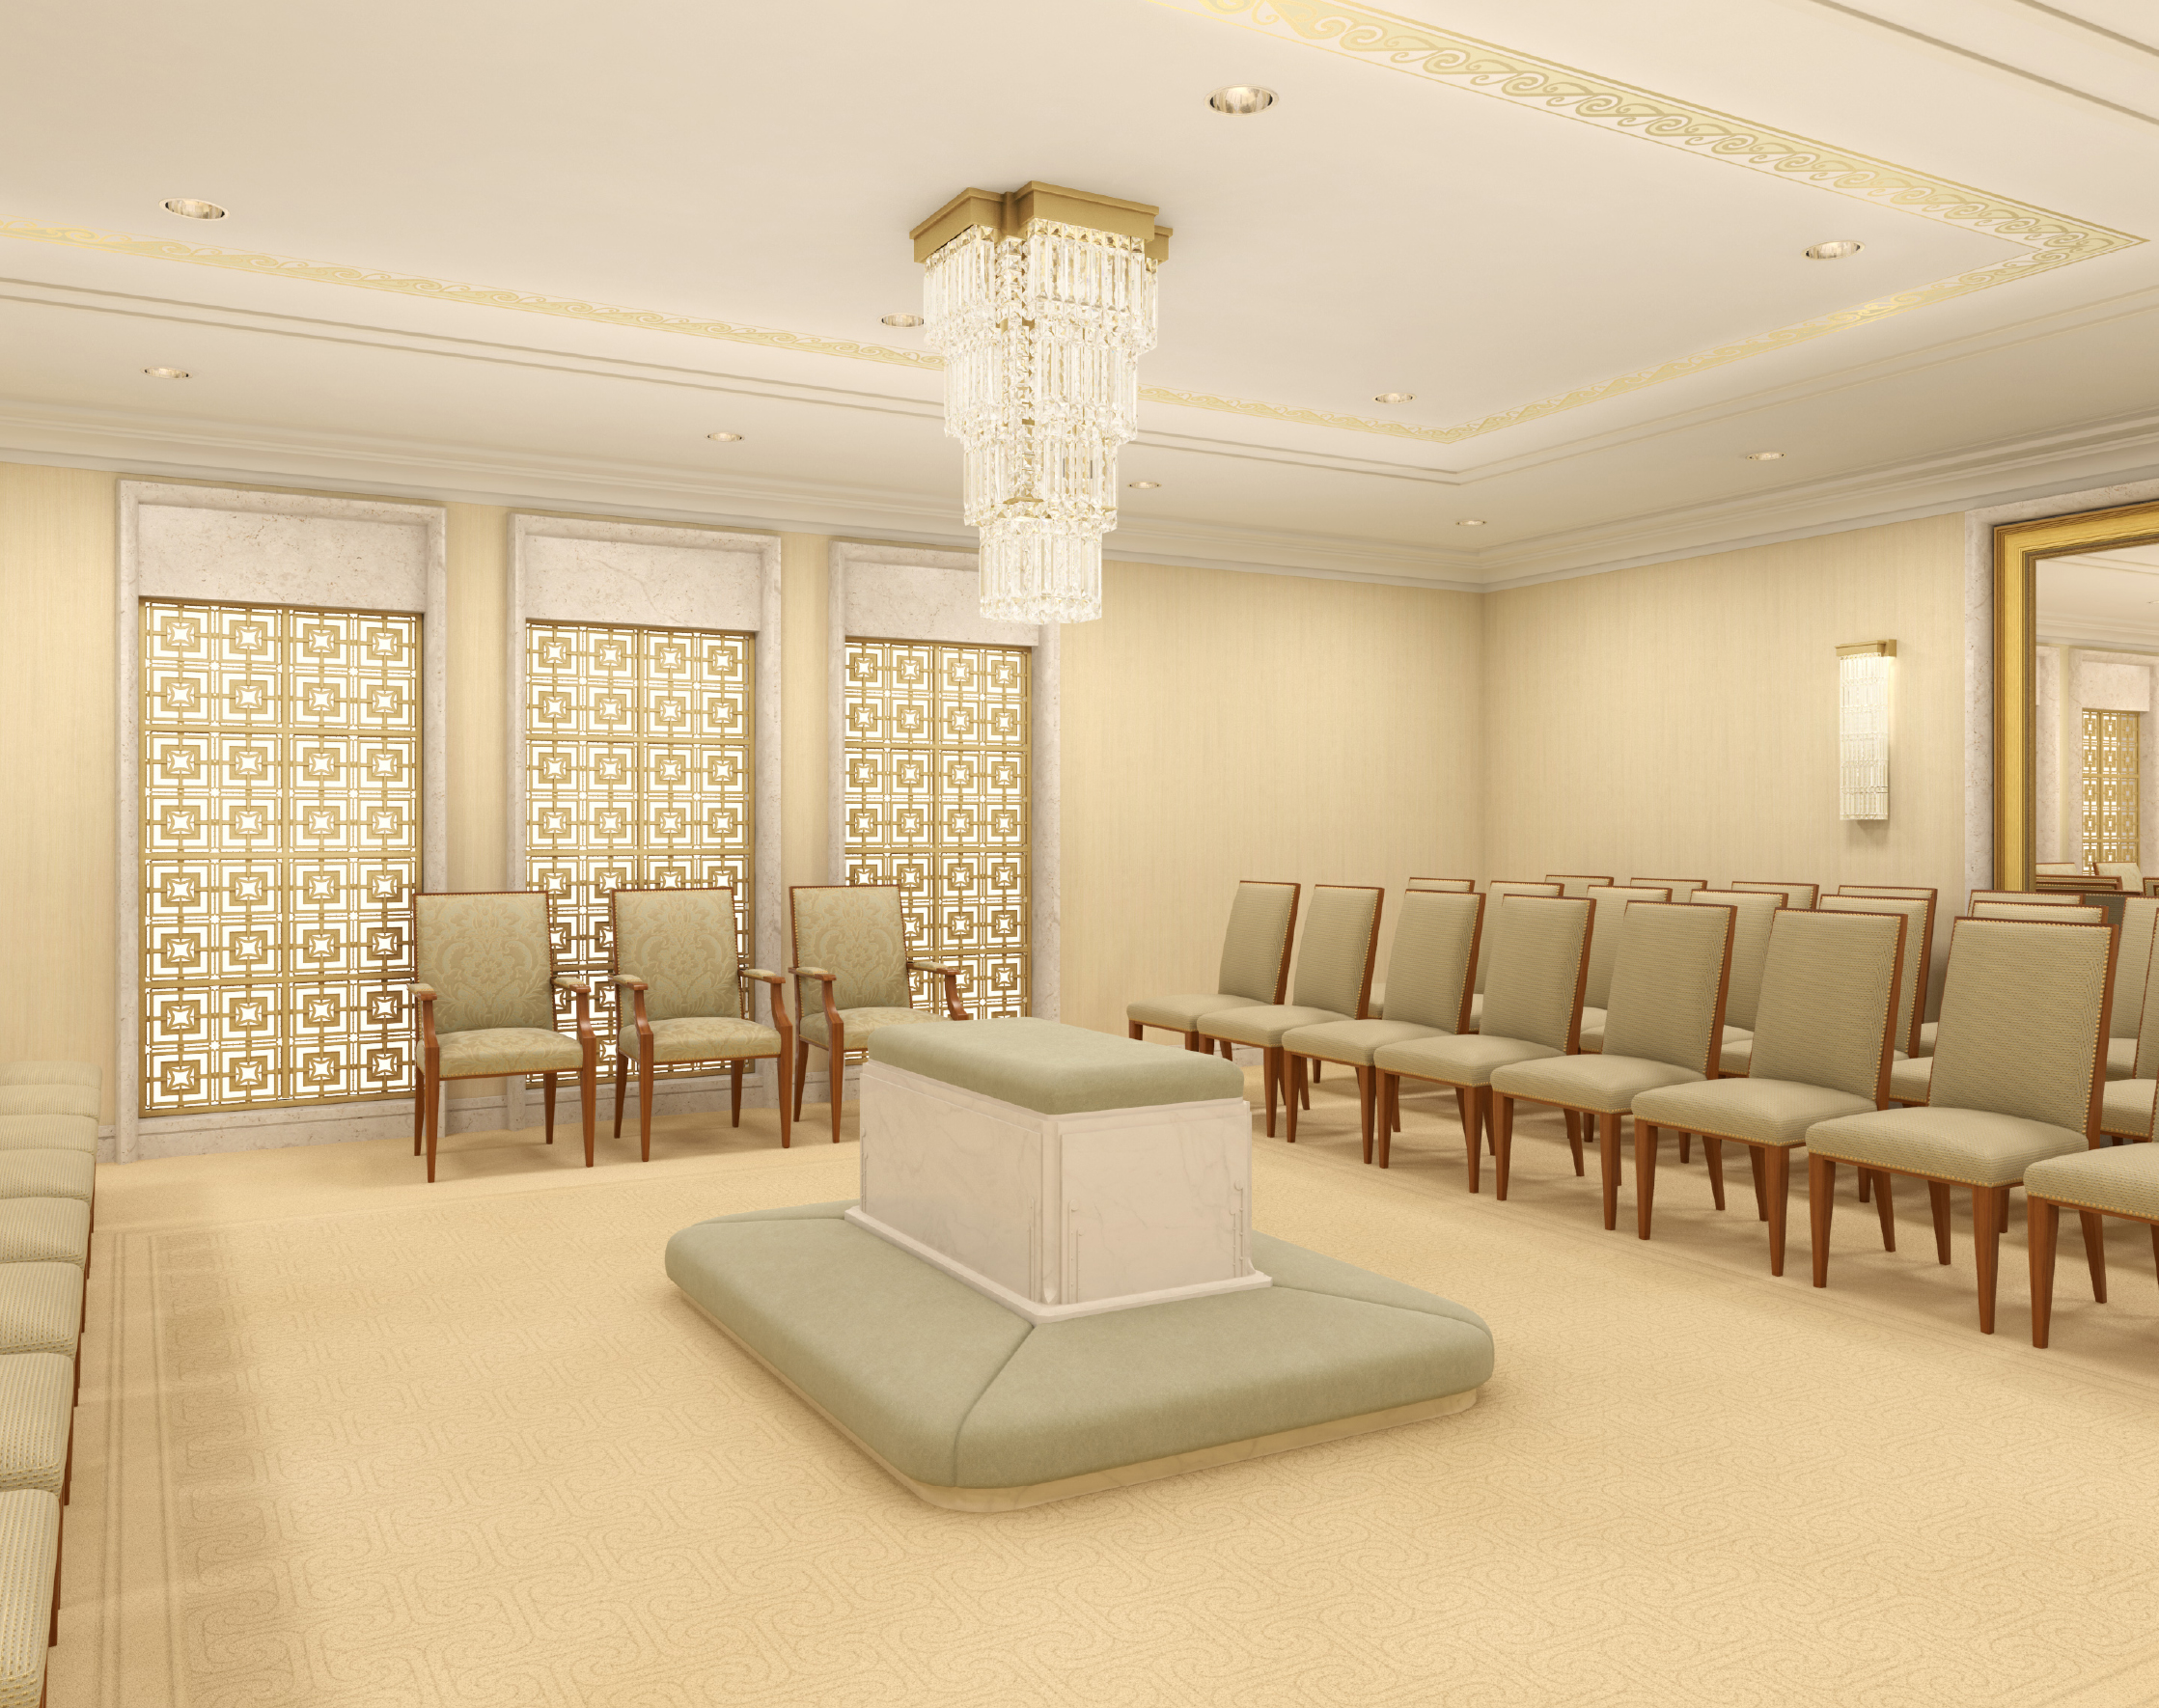 Rendering of a sealing room in the Hamilton New Zealand Temple.